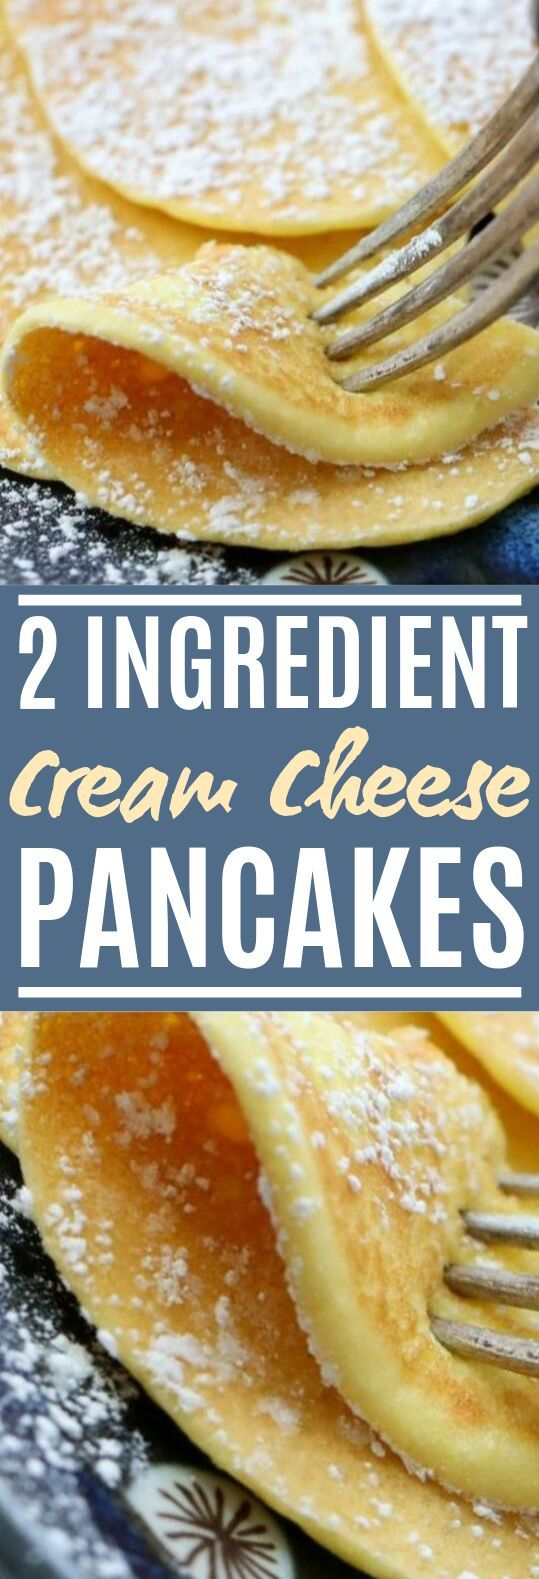 2-Ingredient Cream Cheese Pancakes #healthy #breakfast #insurancequotes